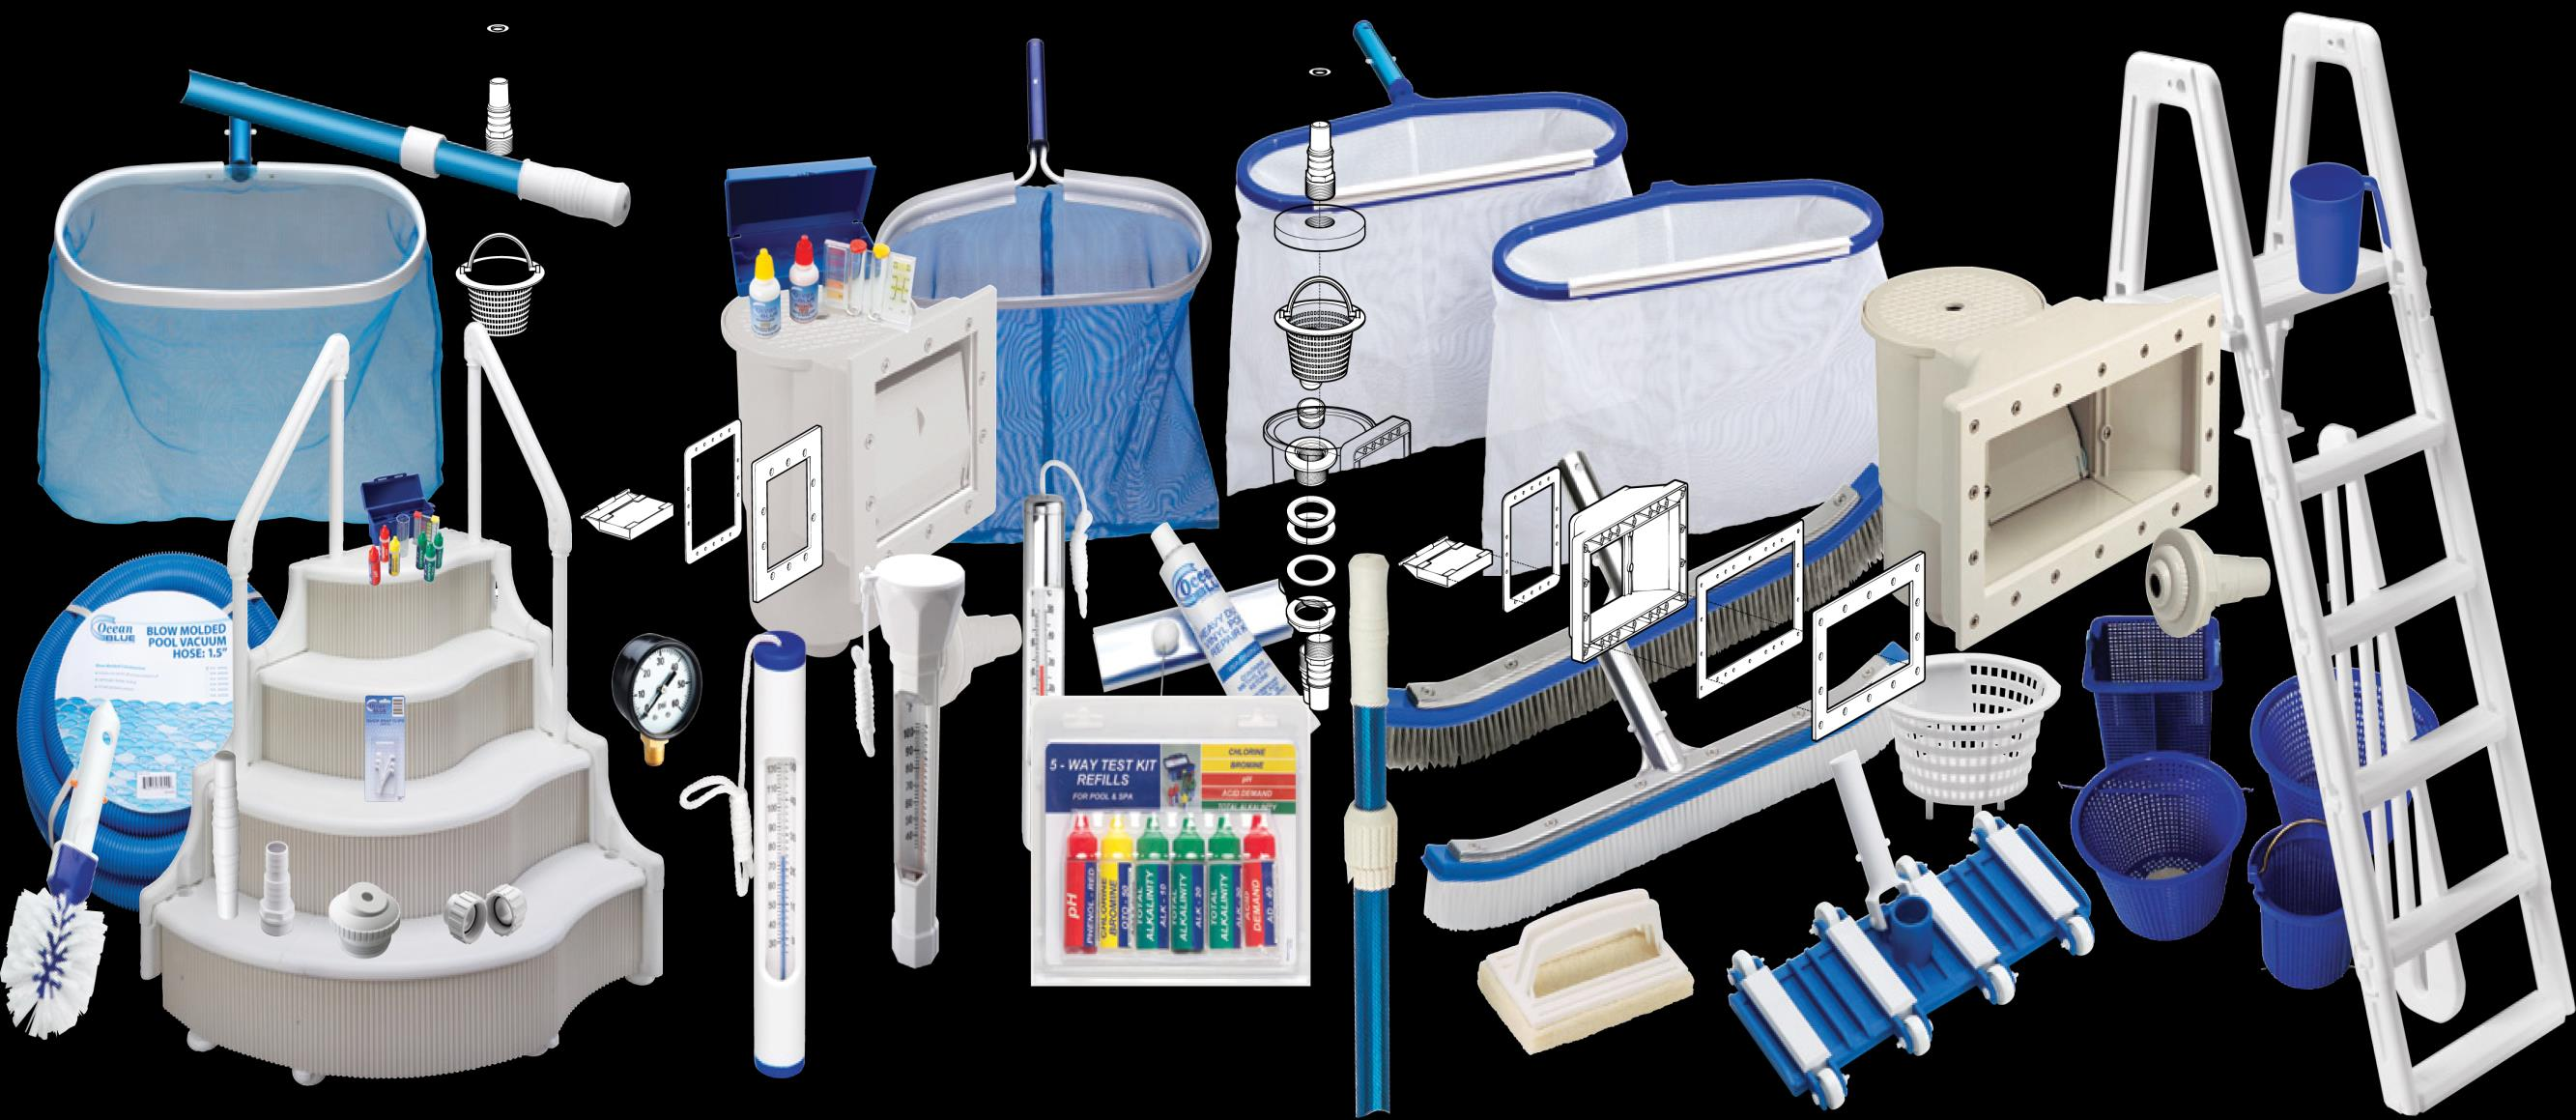 Swimming pool equipment suppliers pdf for Swimming pool equipment suppliers philippines